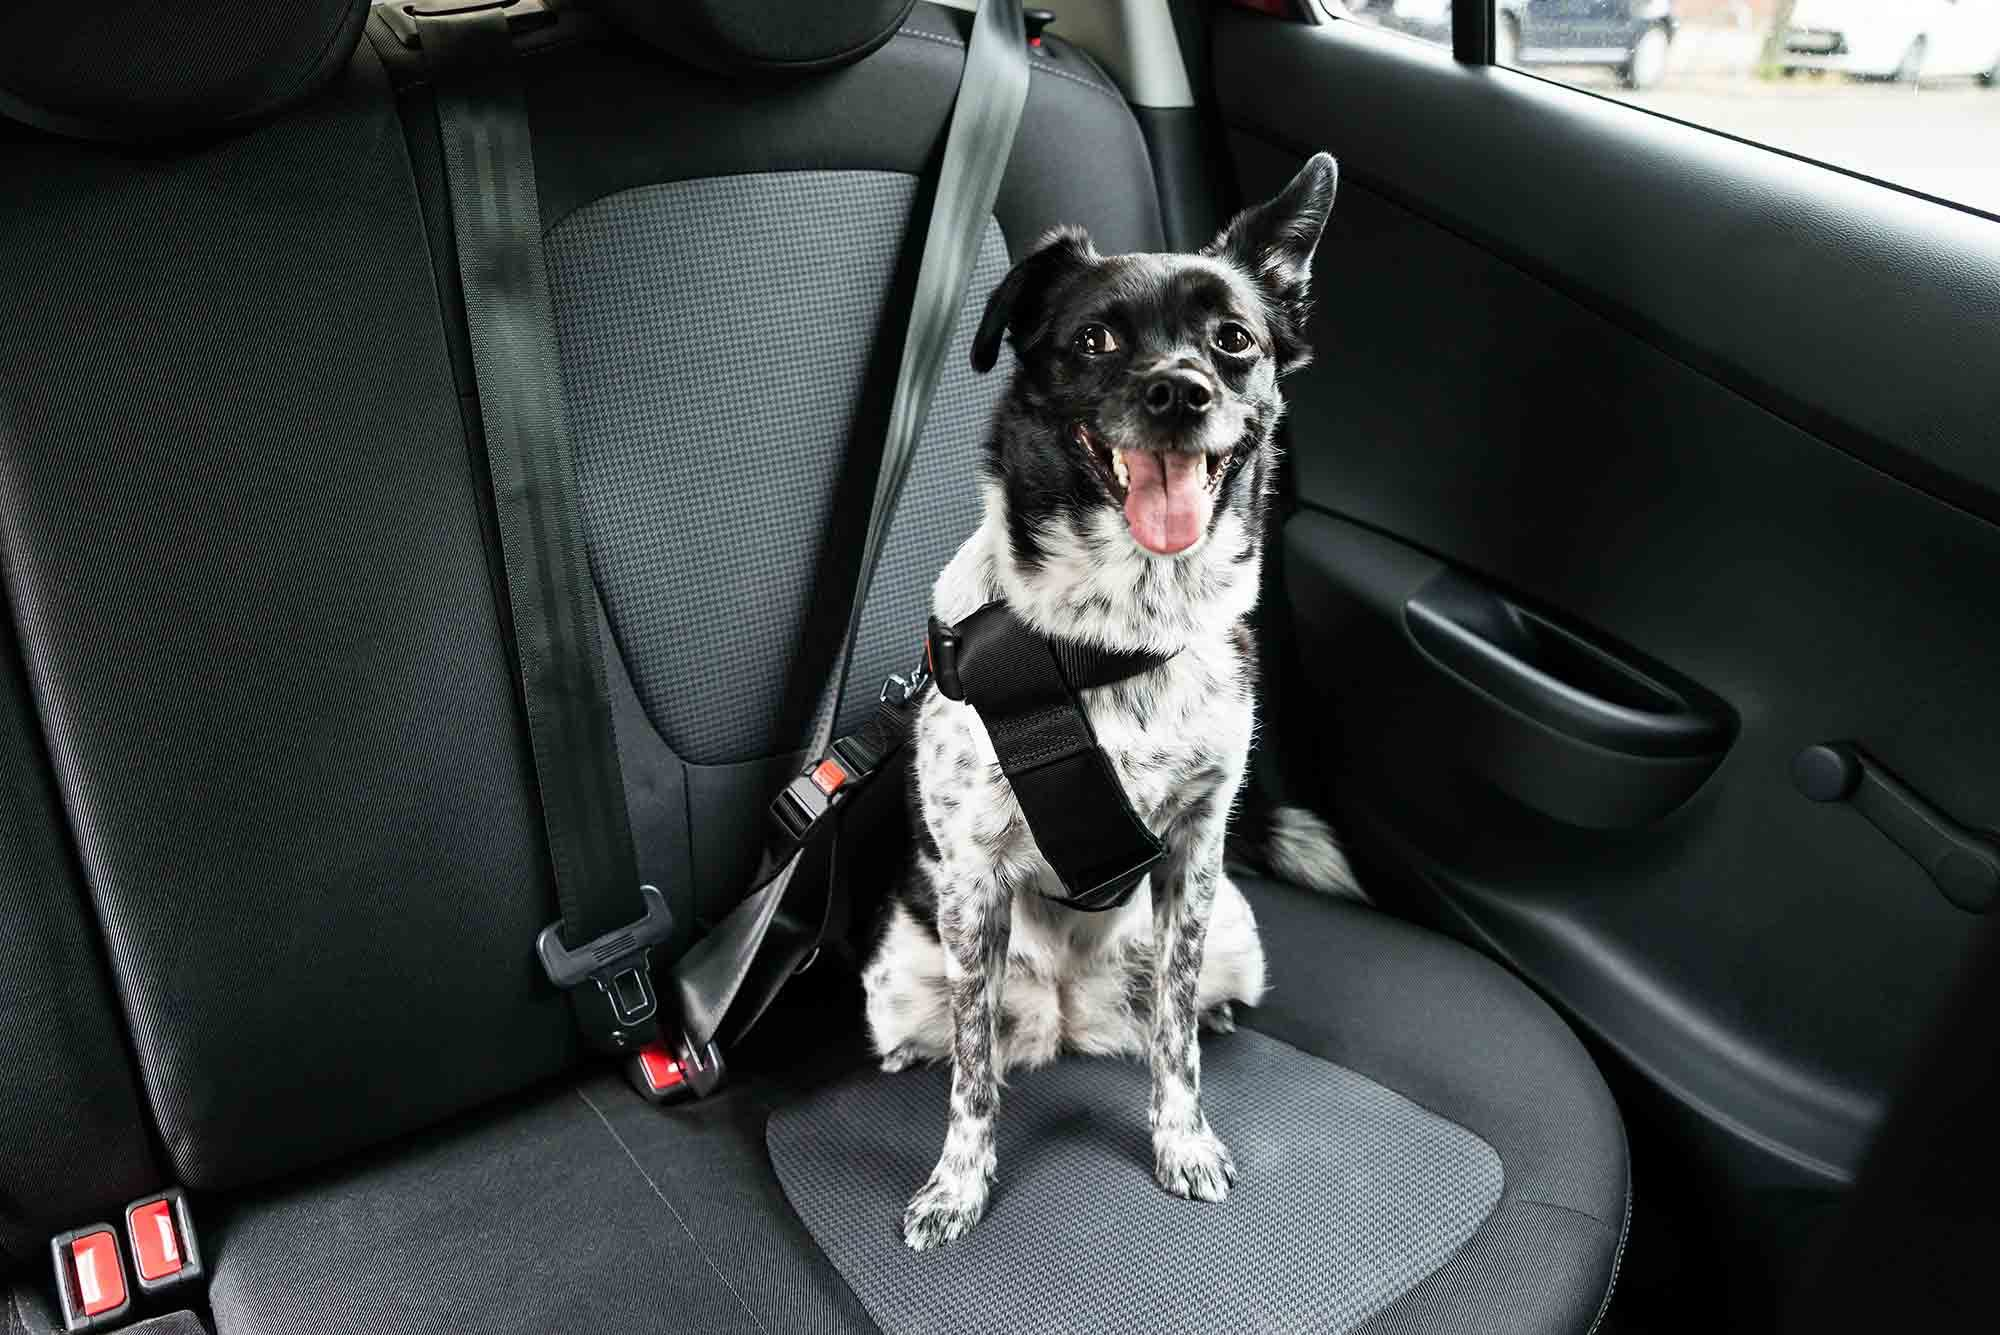 A medium white and black dog sitting contently in the back sear of a car, wearing a doggy seatbelt, one ear up, happy to go for a ride.